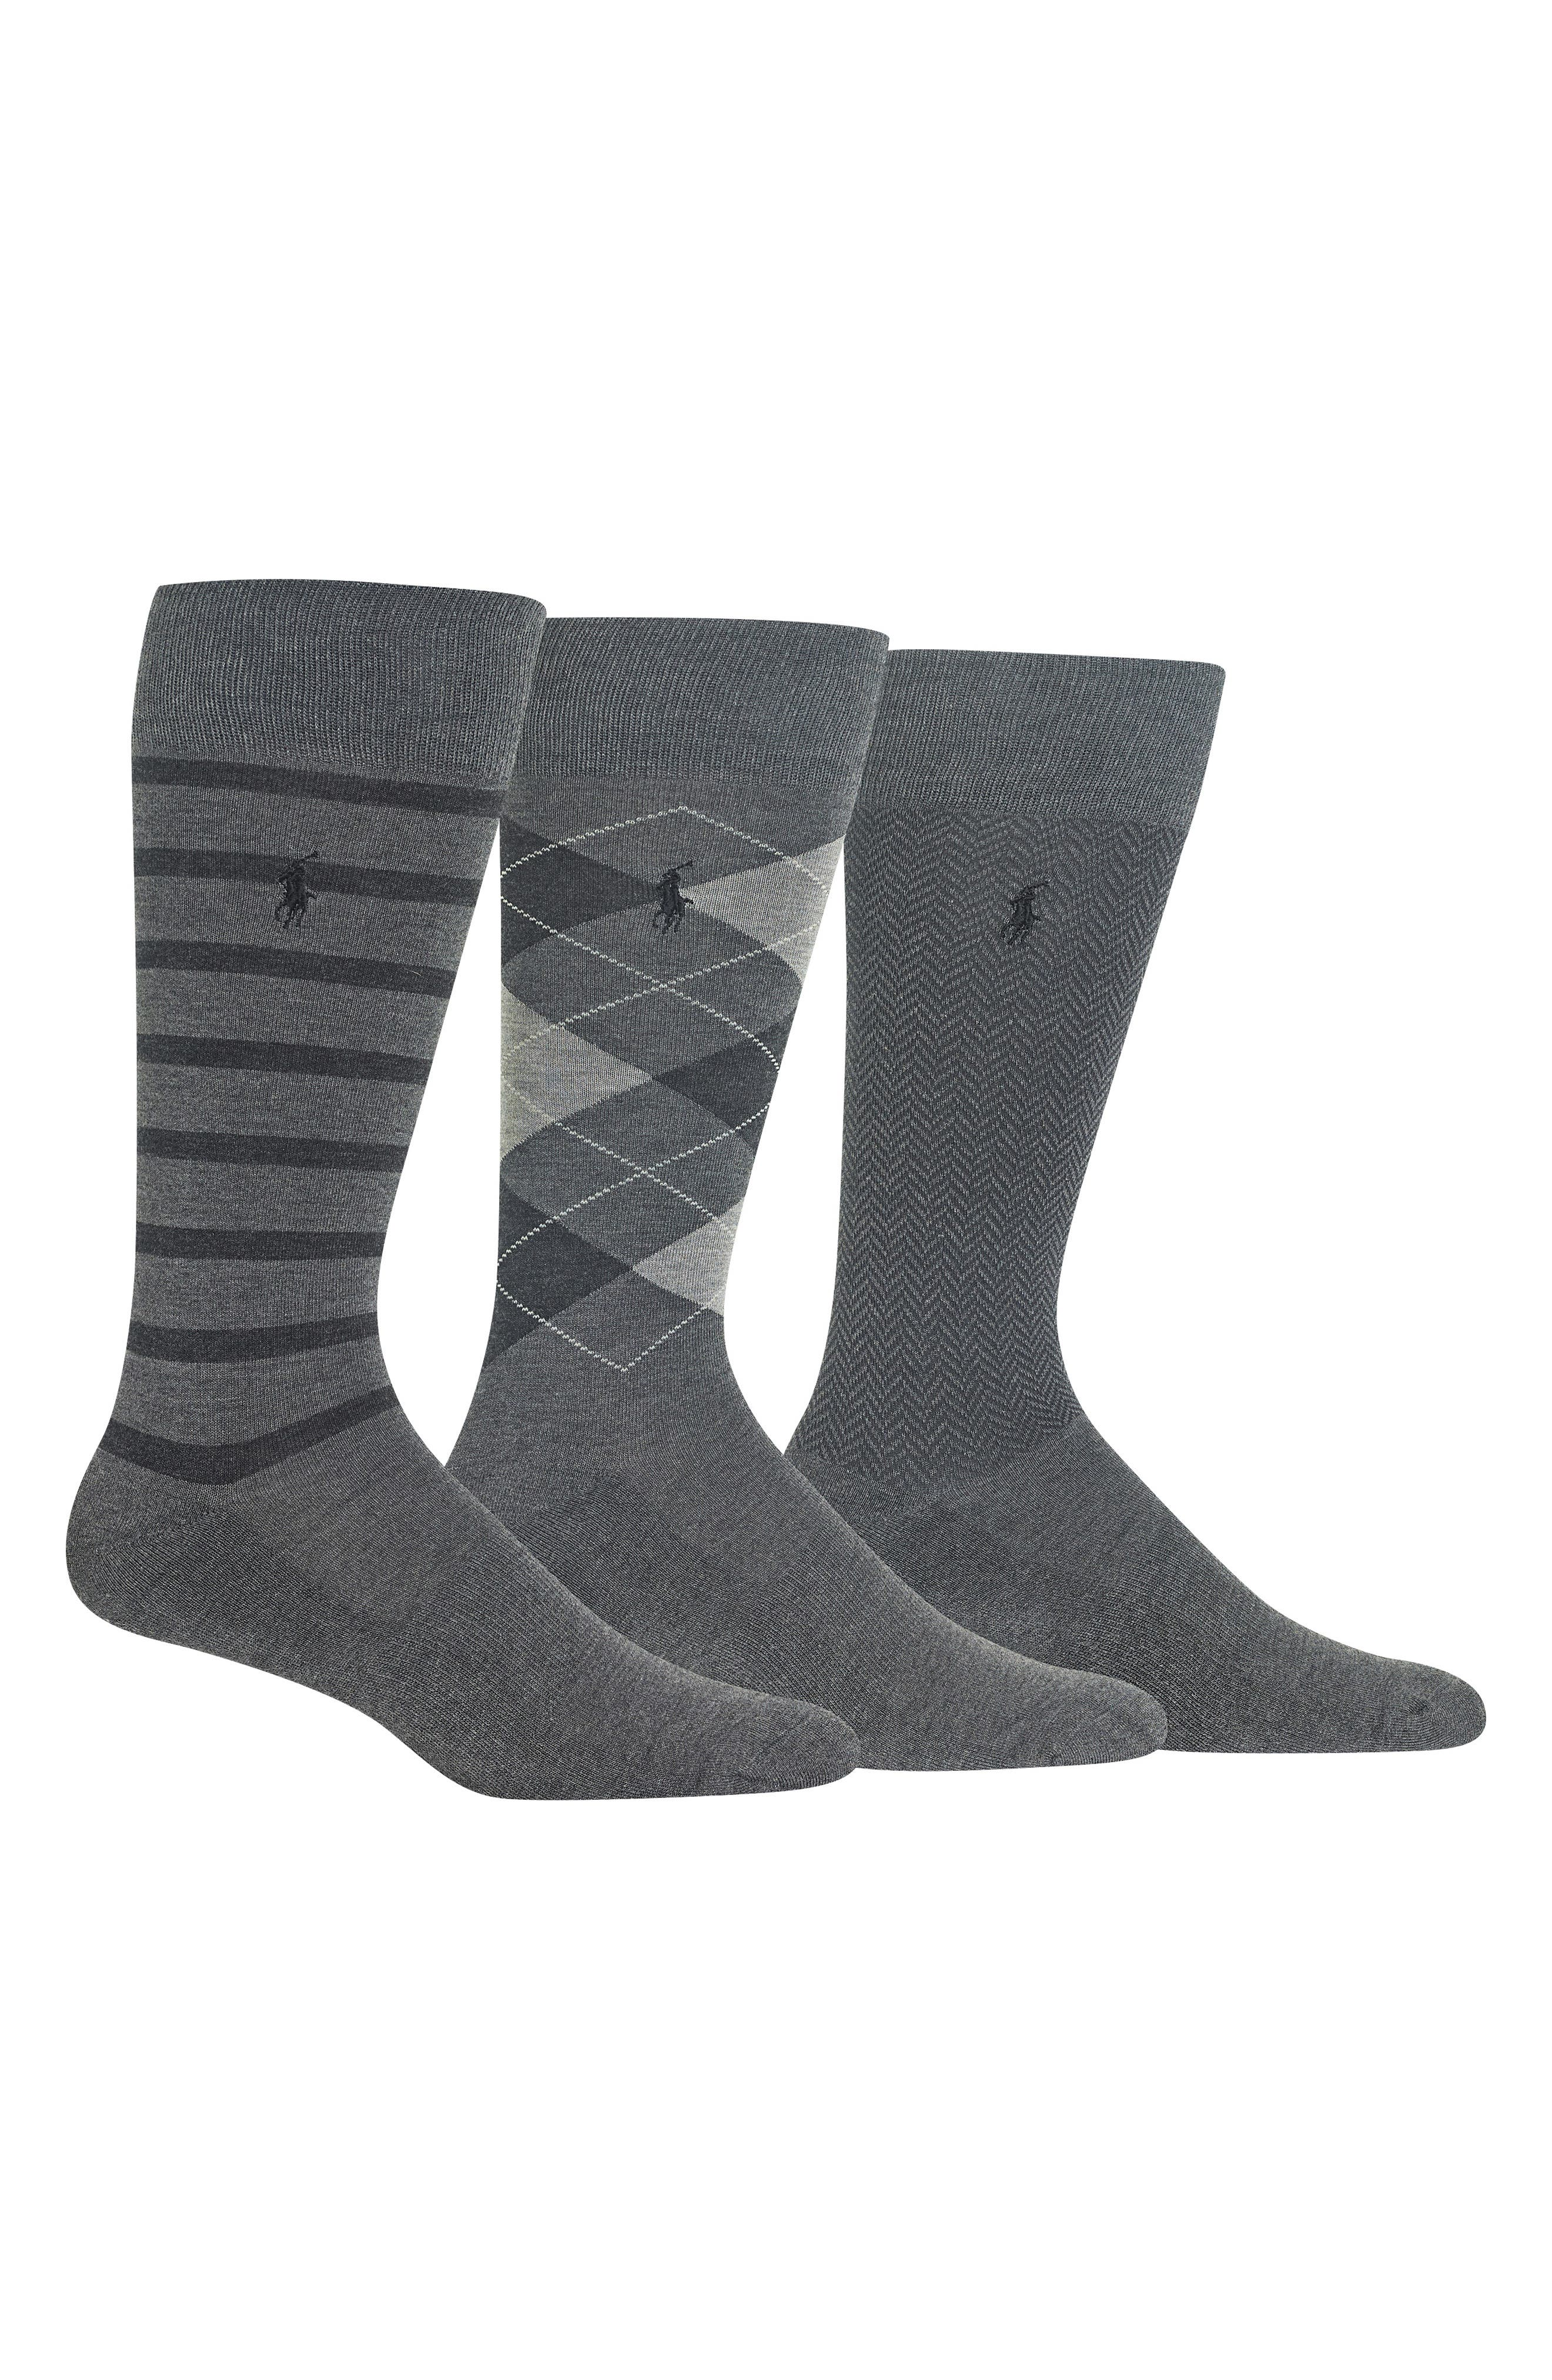 3-Pack Patterned Socks, Main, color, CHARCOAL HEATHER